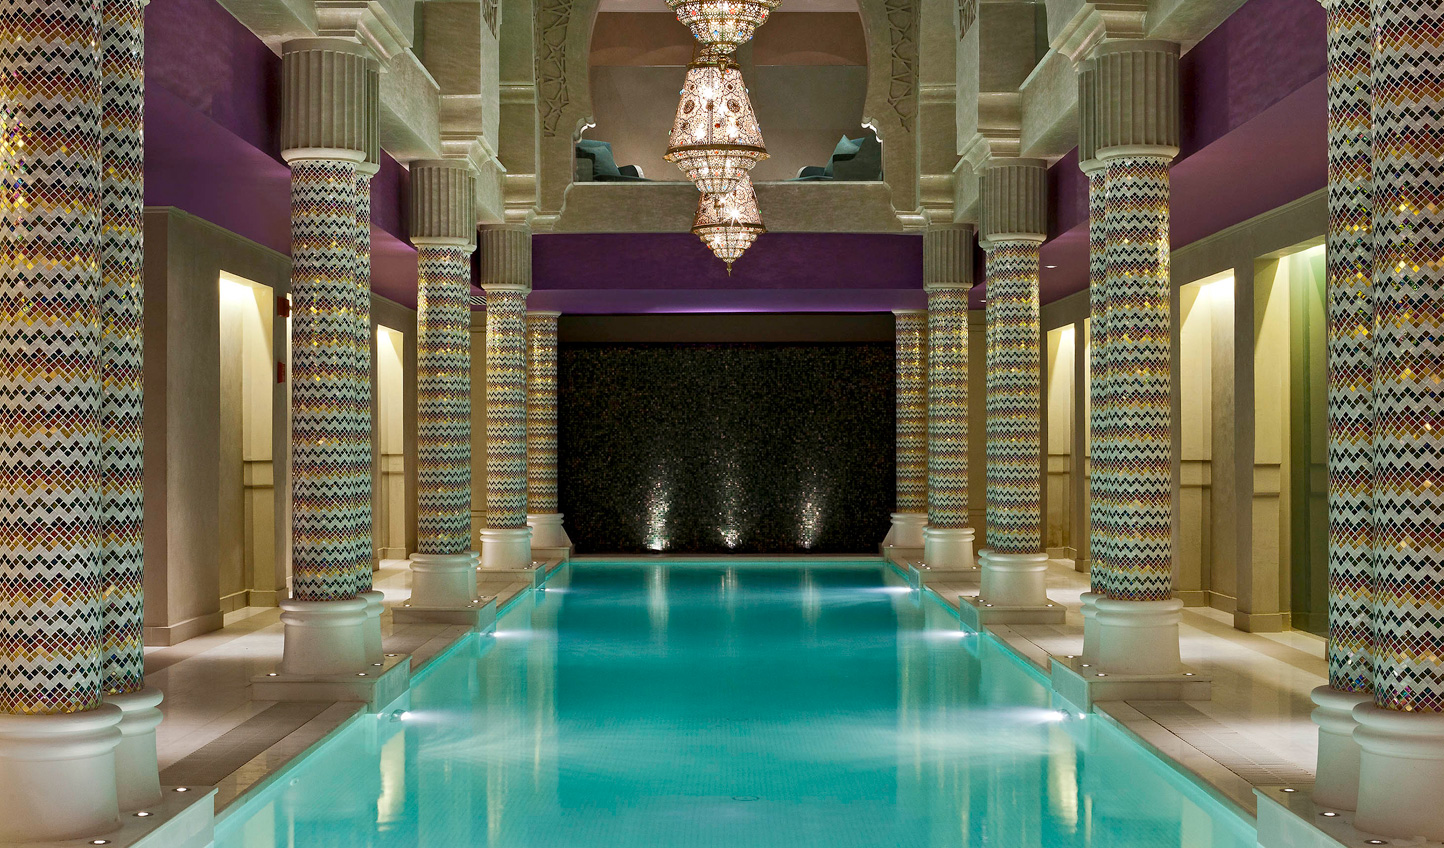 Unwind at the Spa after a day exploring the city